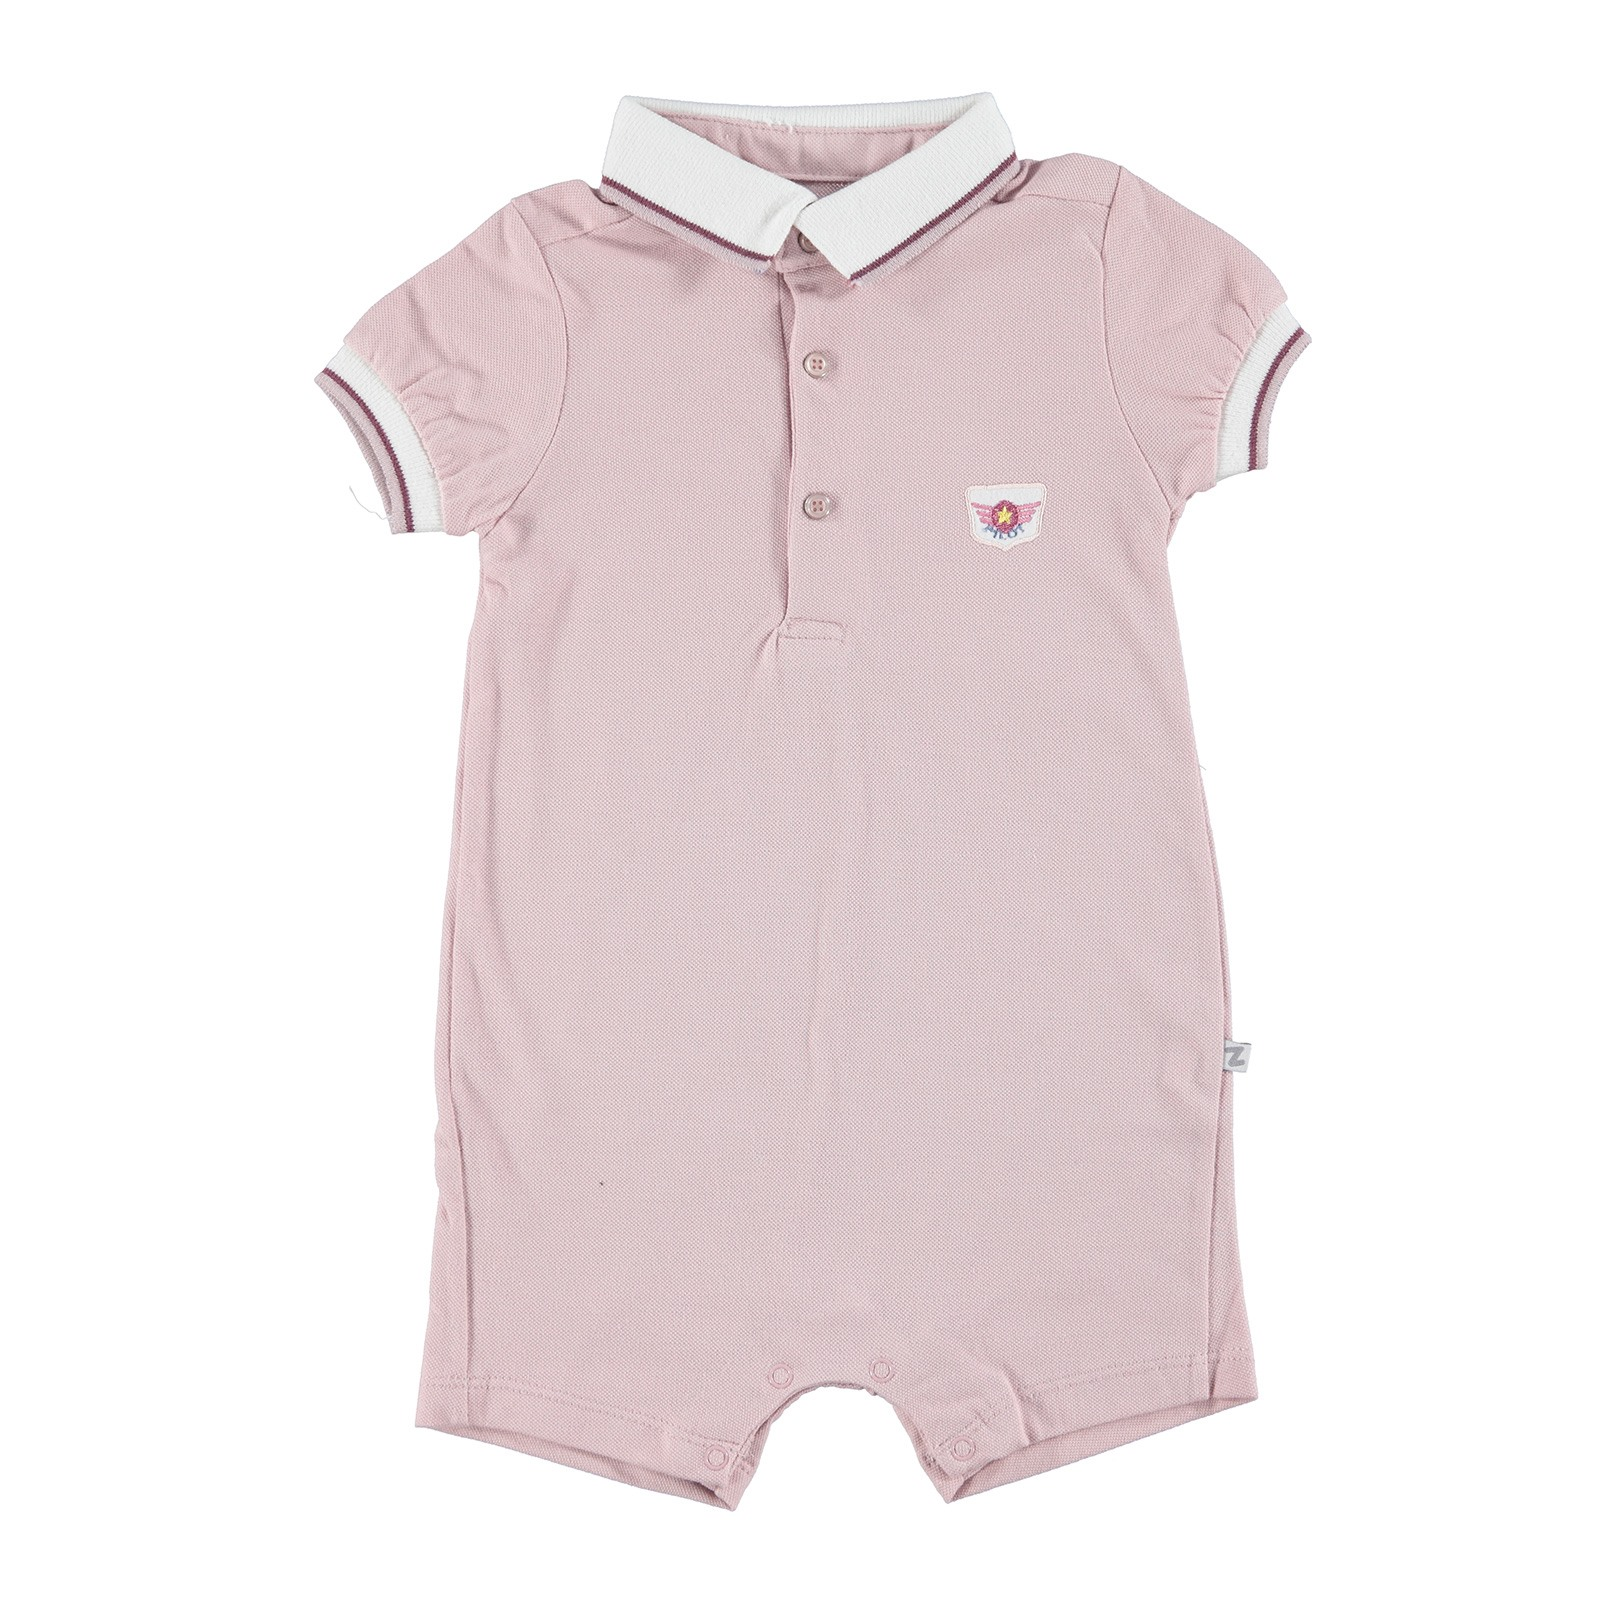 BabyZ Baby Polo Neck Fab, Pink, 9 Months